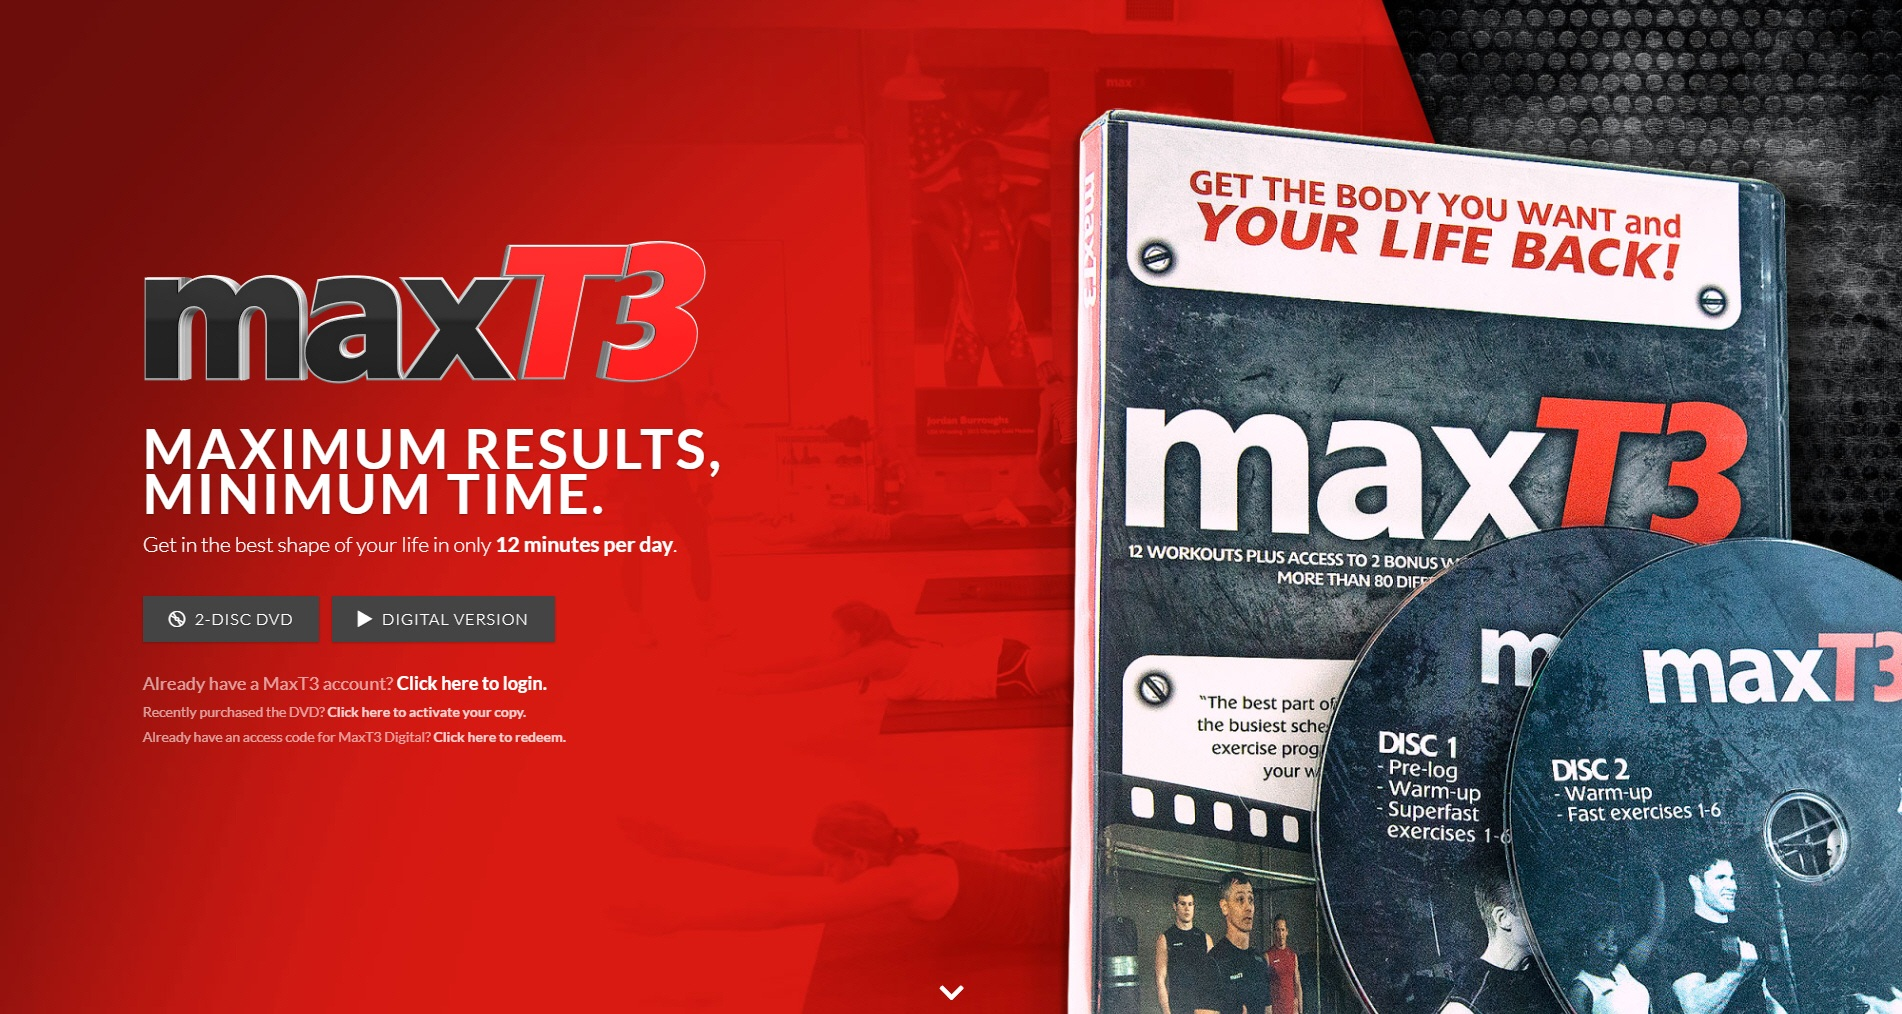 MaxT3 Workouts